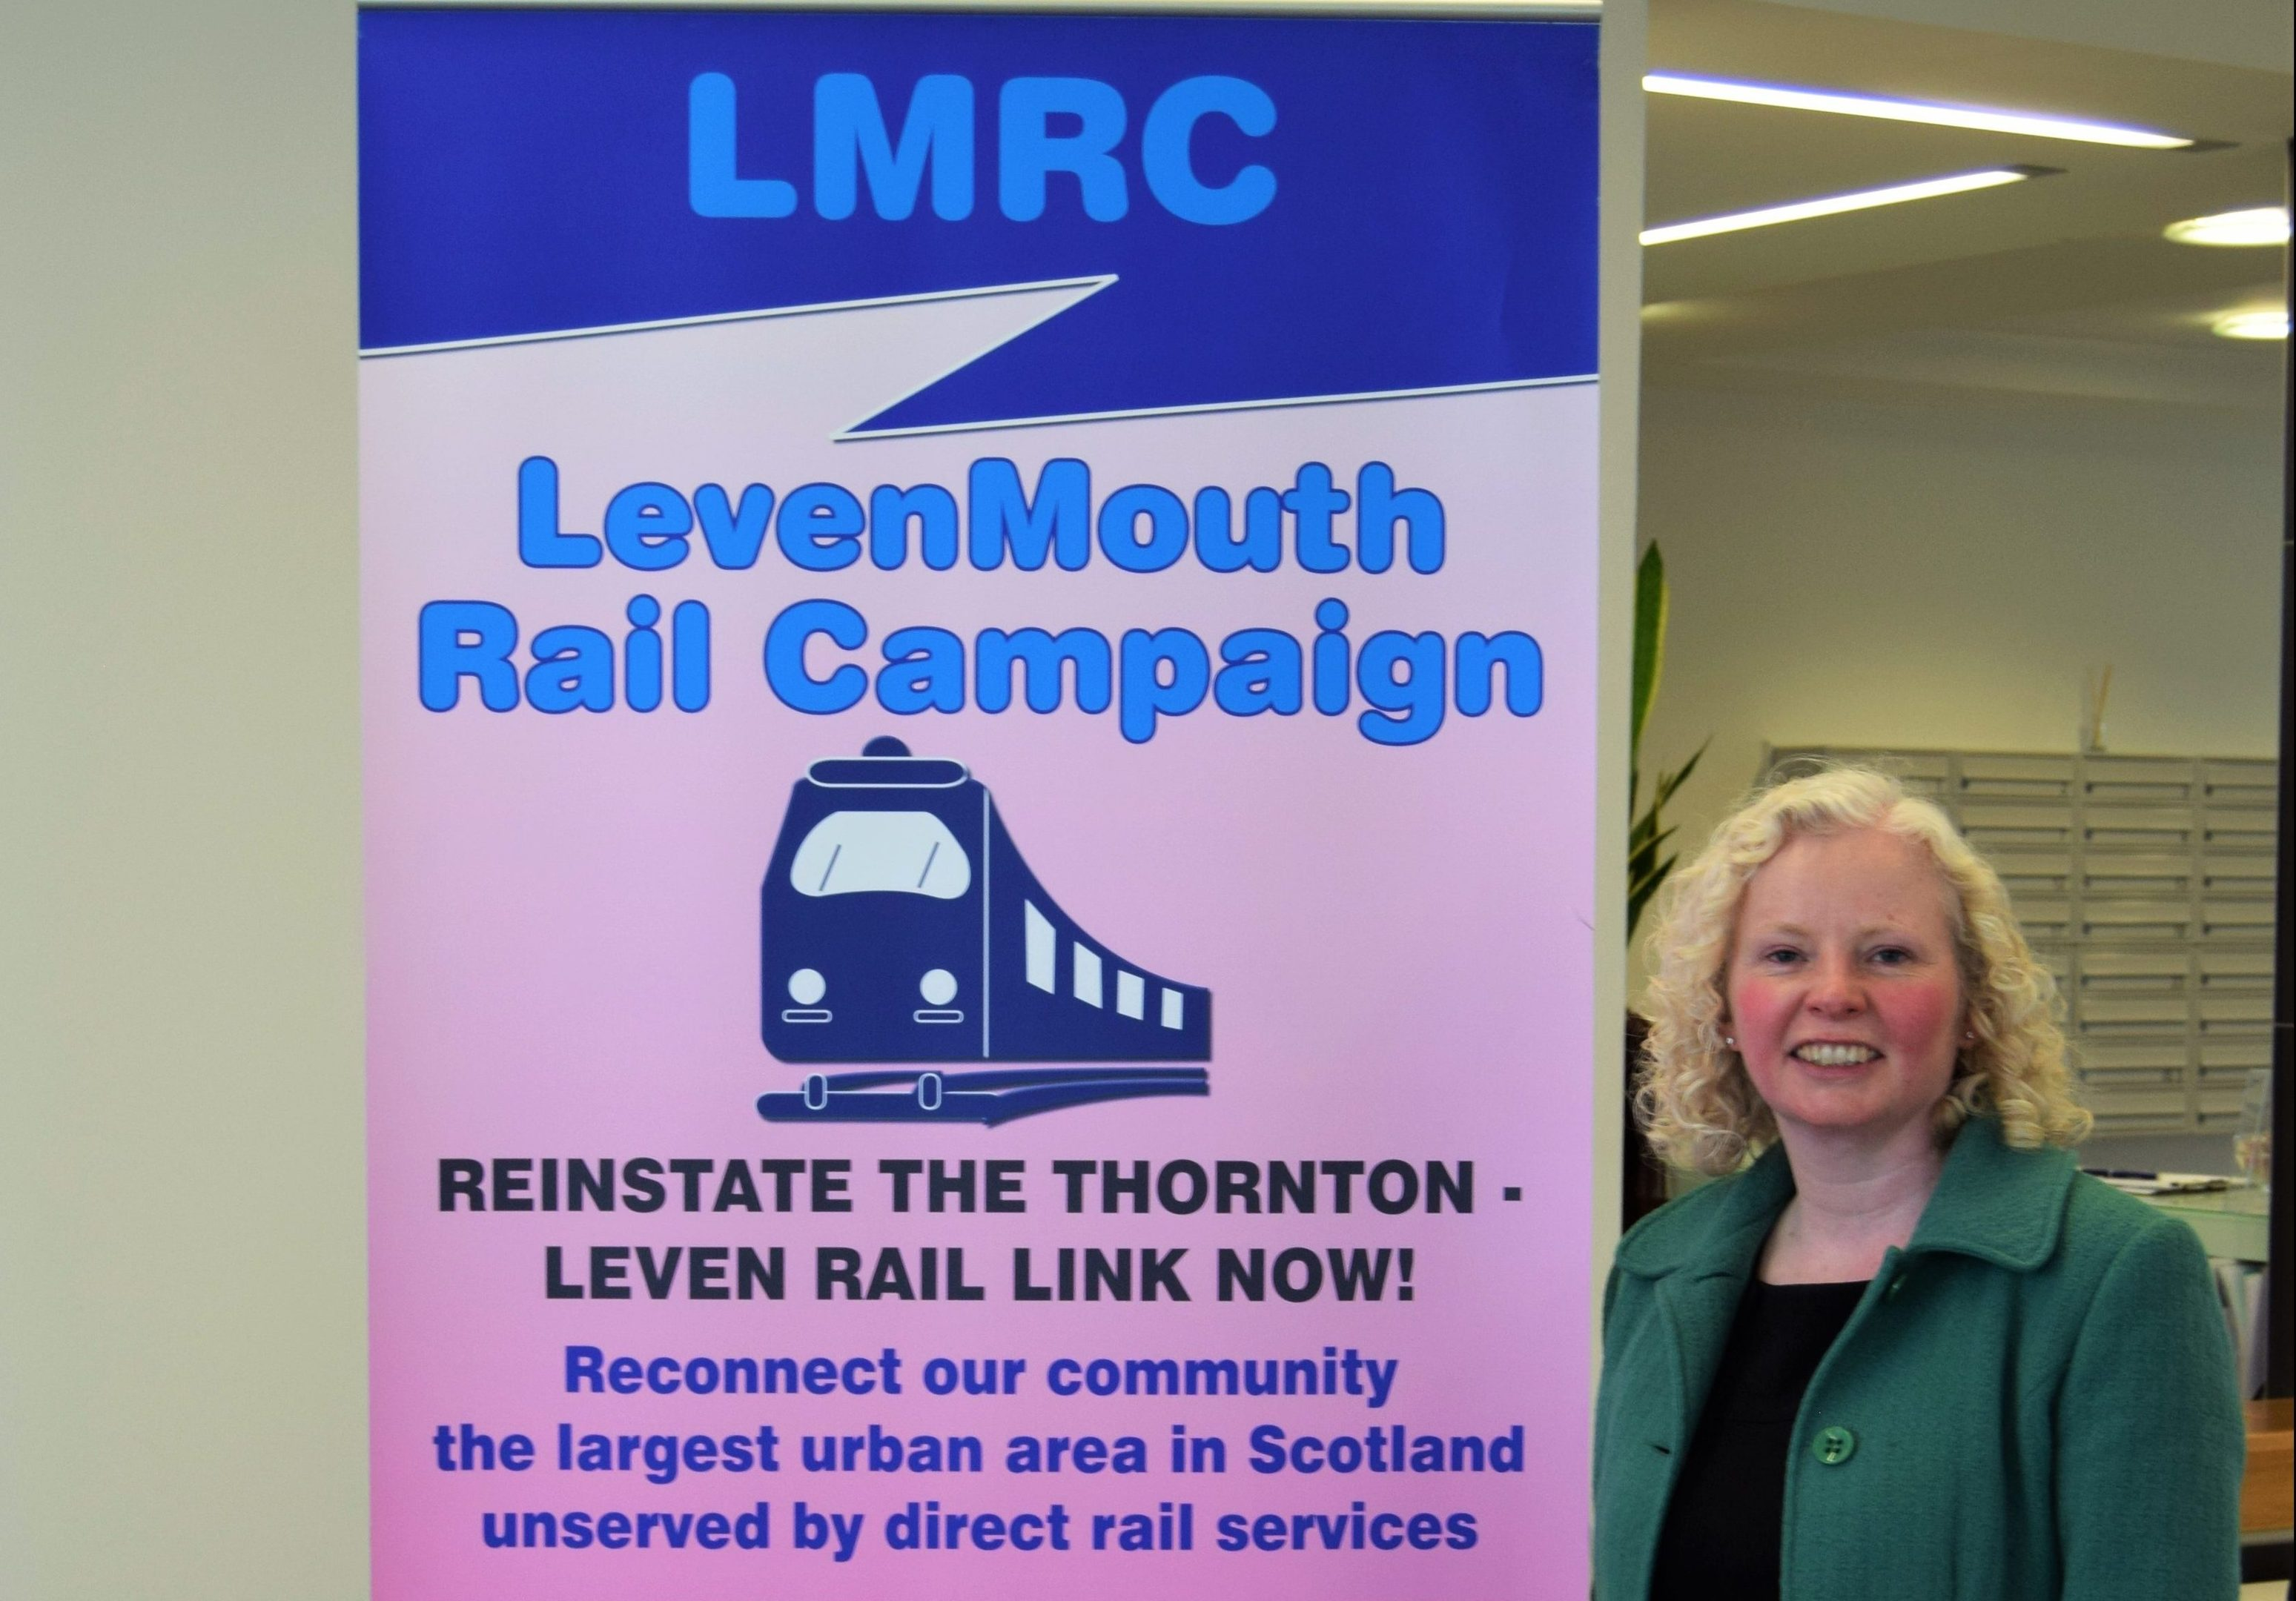 Claire Baker MSP supports reinstating the Levenmouth rail link